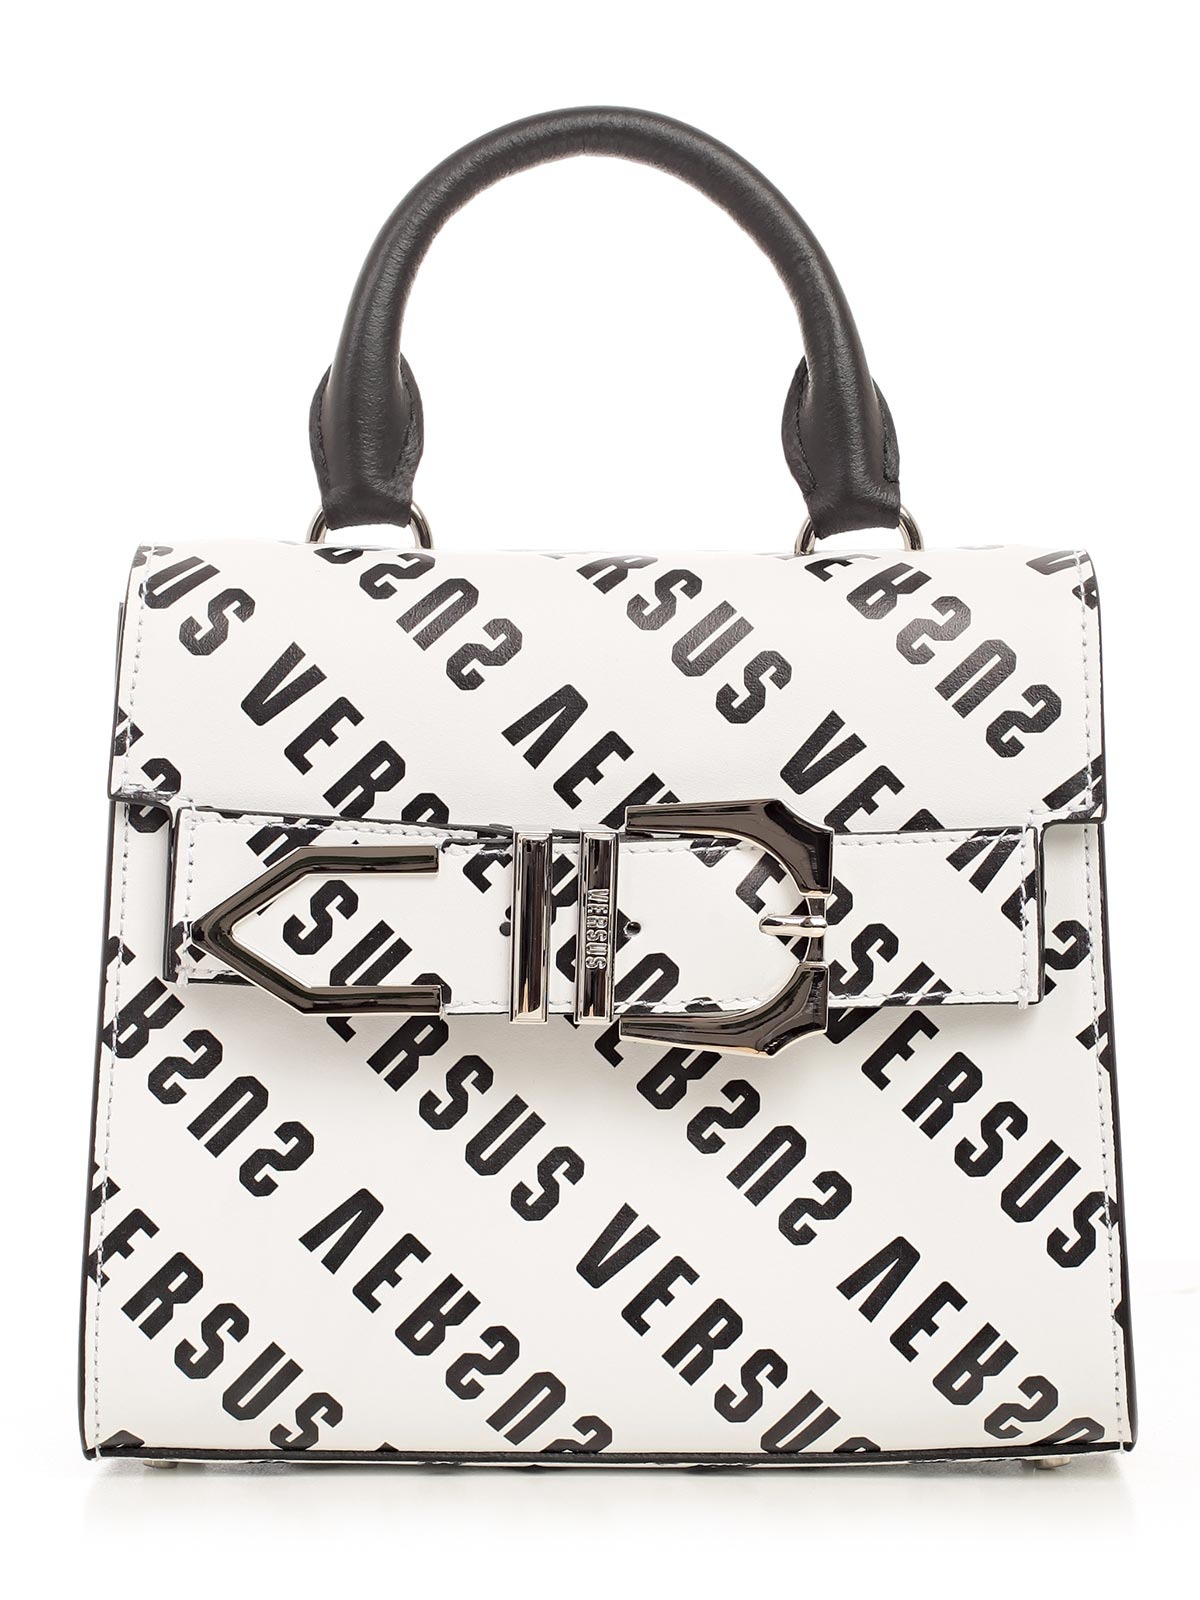 Picture of Versus Versace Shoulder Bag